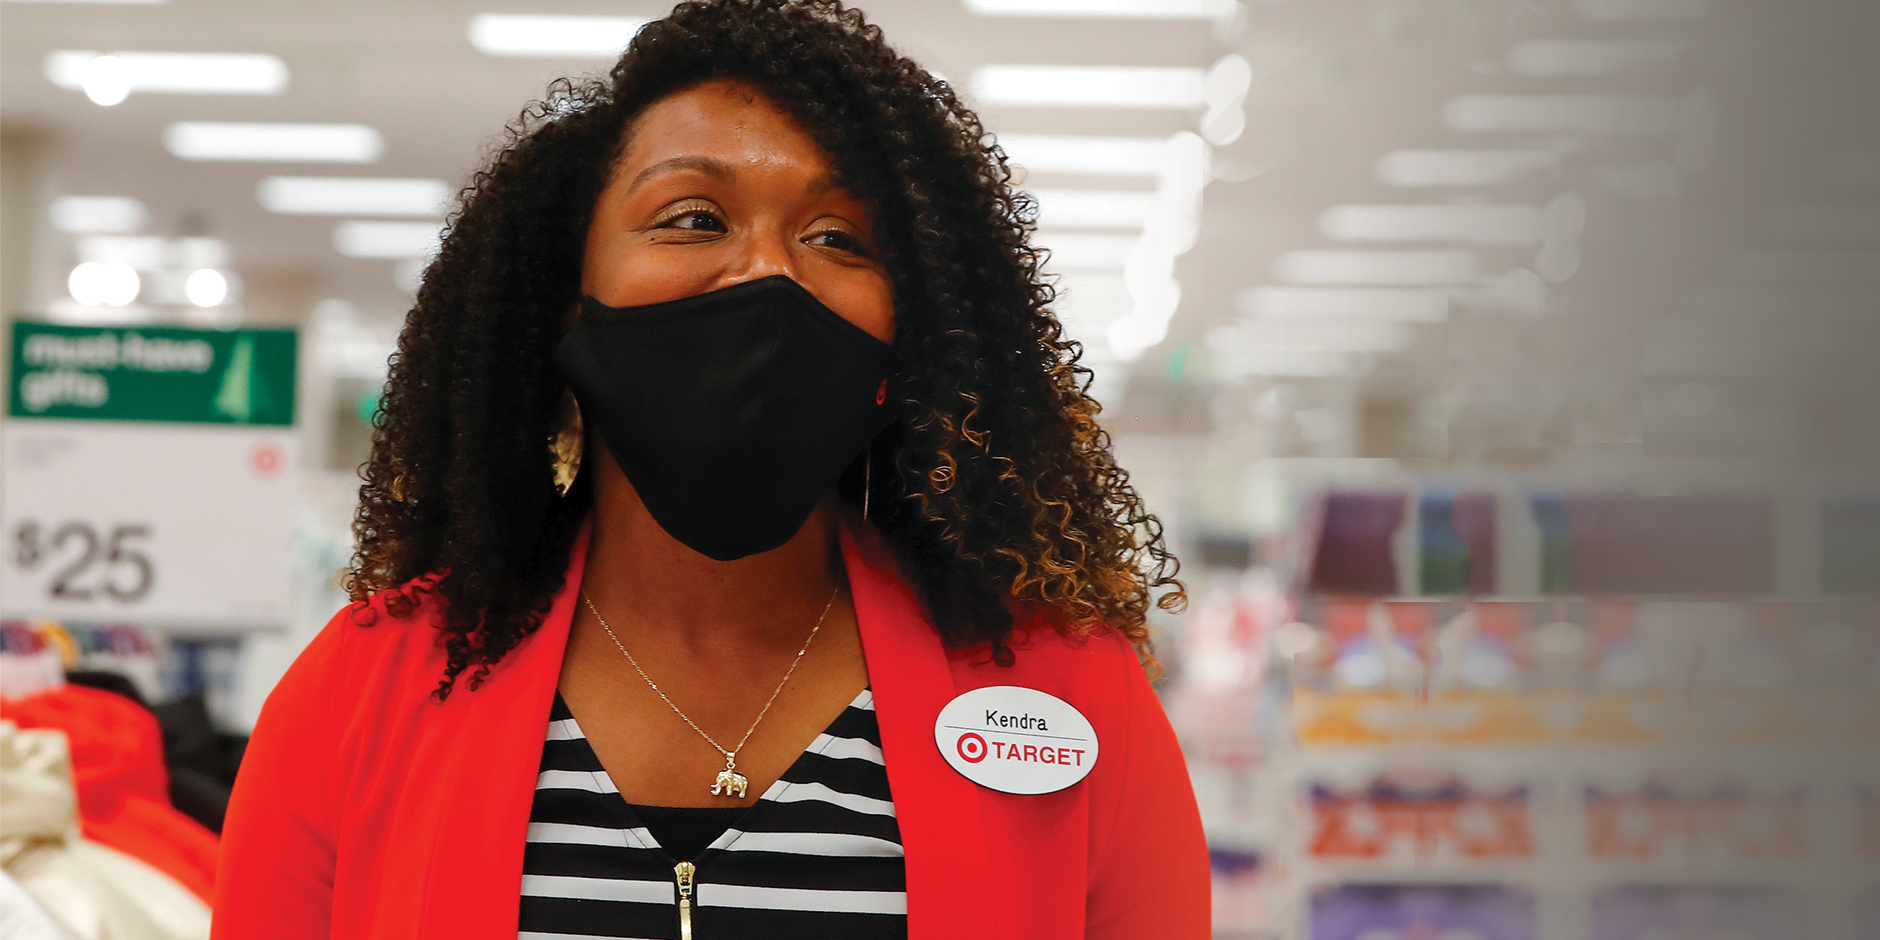 A Target team member in a red sweater and black face mask